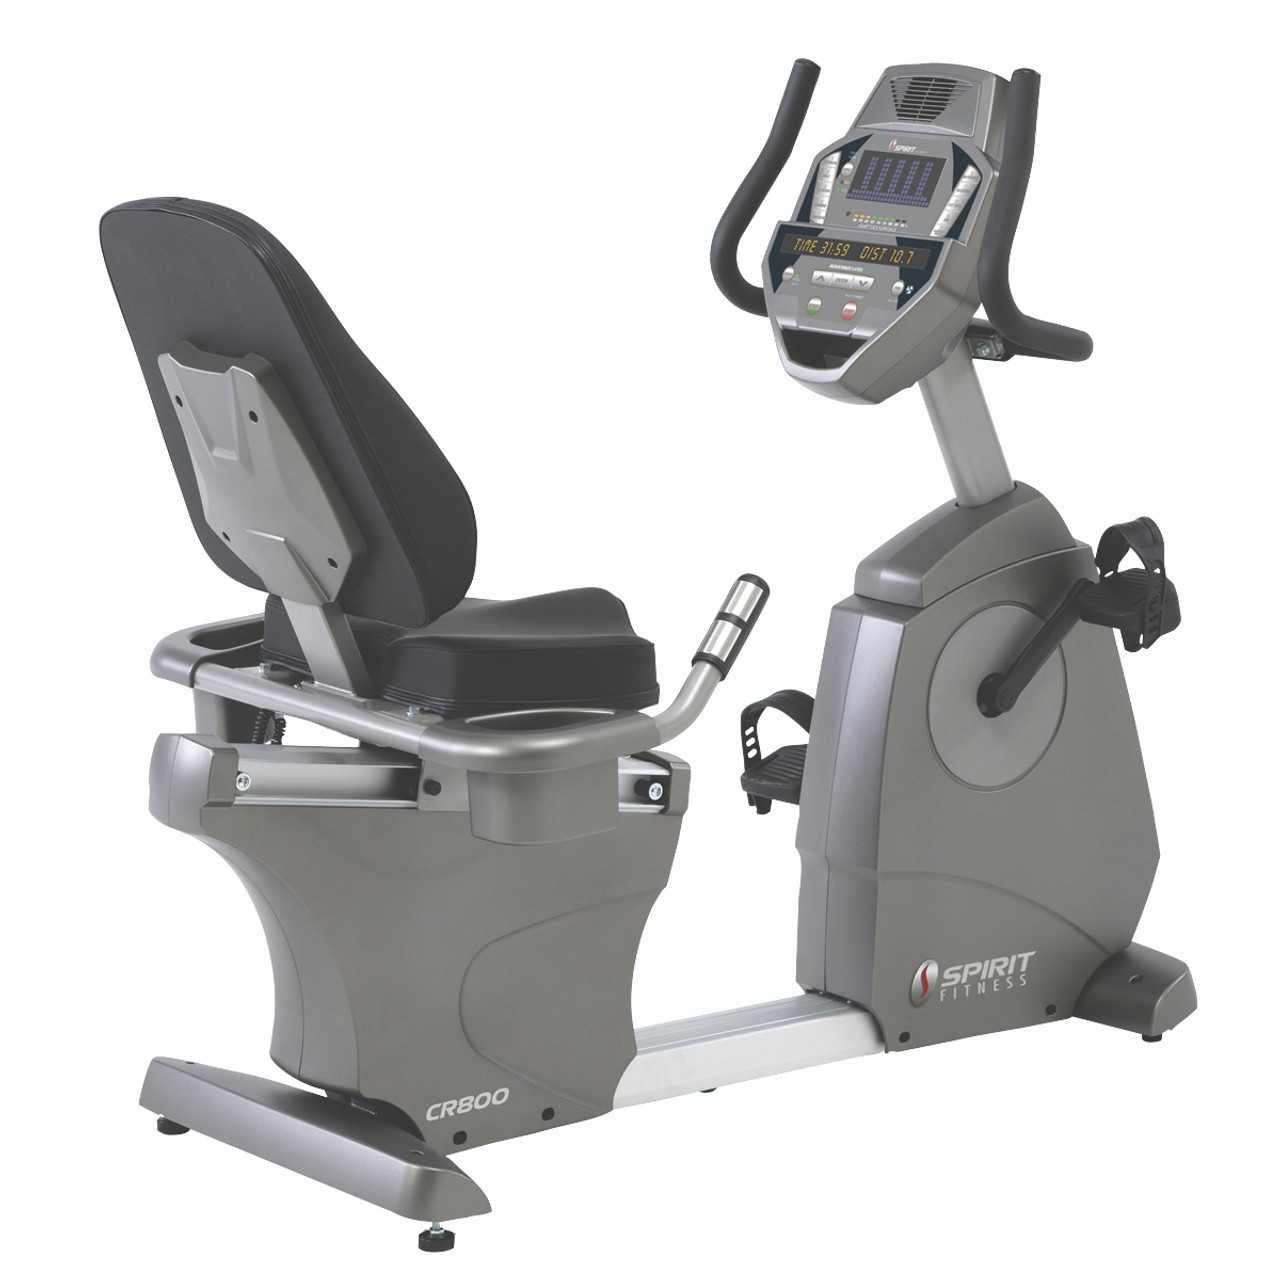 "Spirit CR800 Recumbent Bike, 57"" x 30"" x 51"""